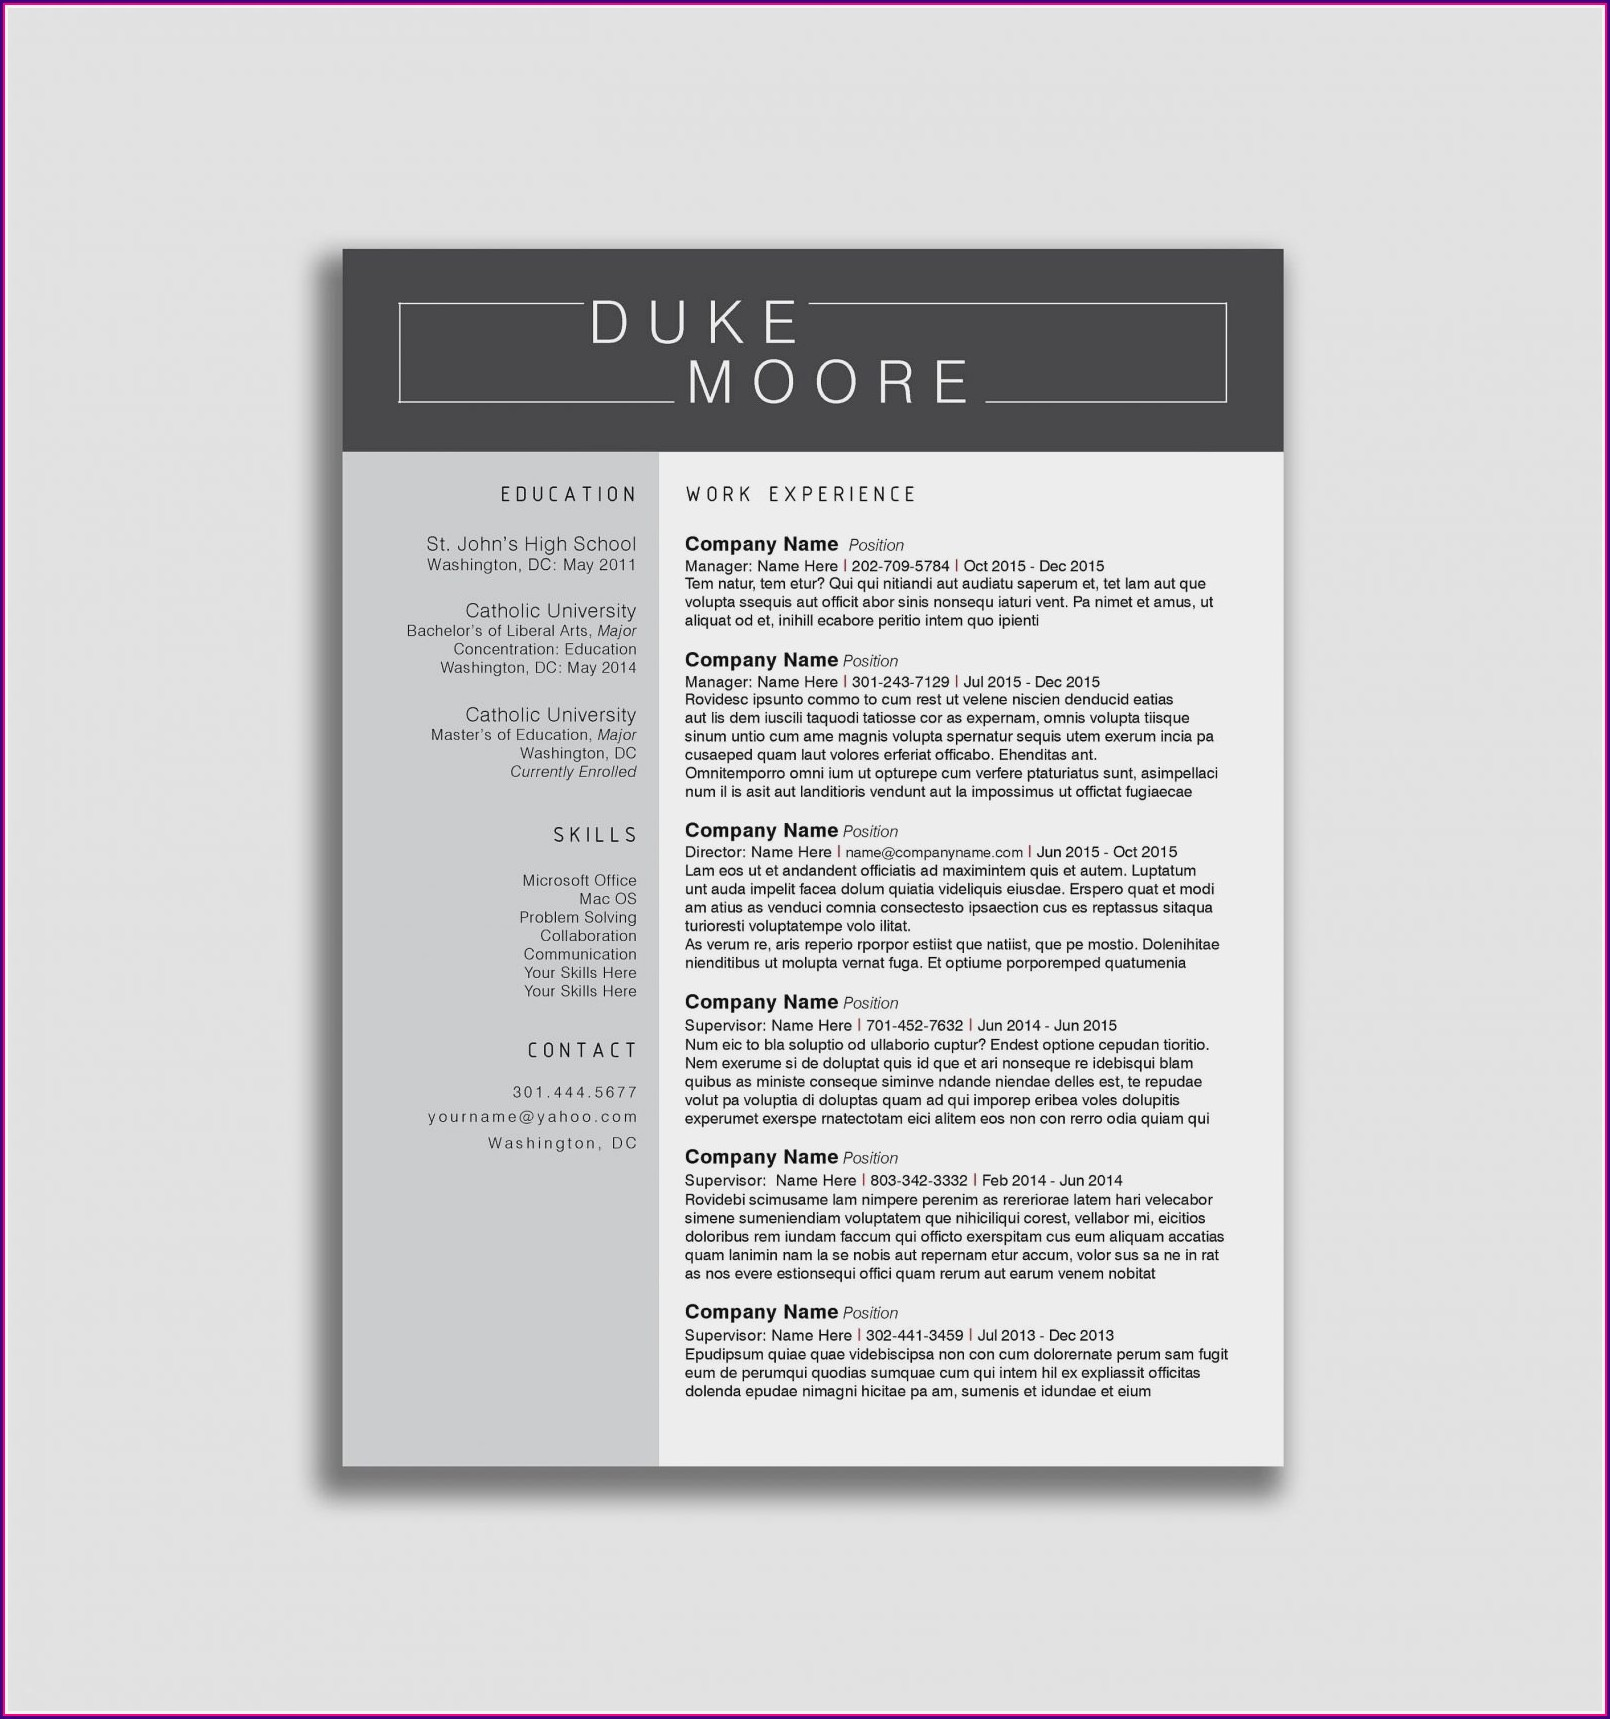 Resume Samples 2018 Free Download